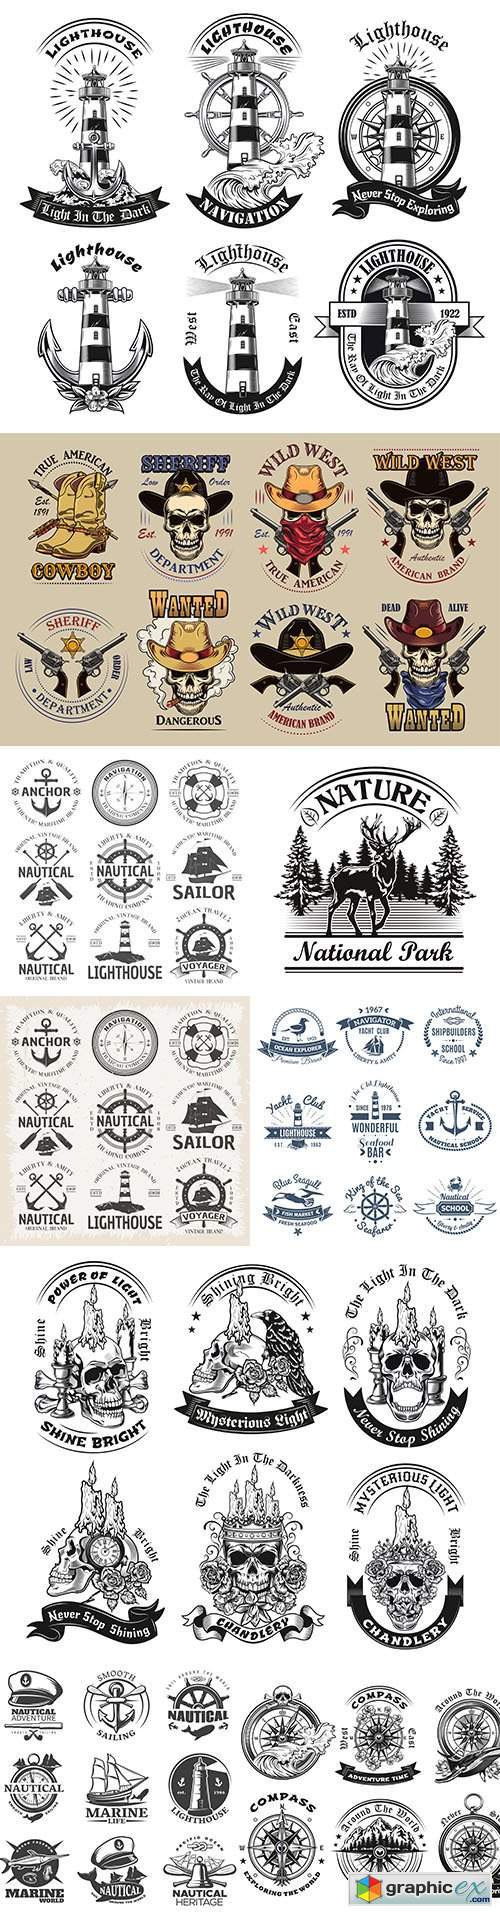 Marine world and Wild West set of labels and logos